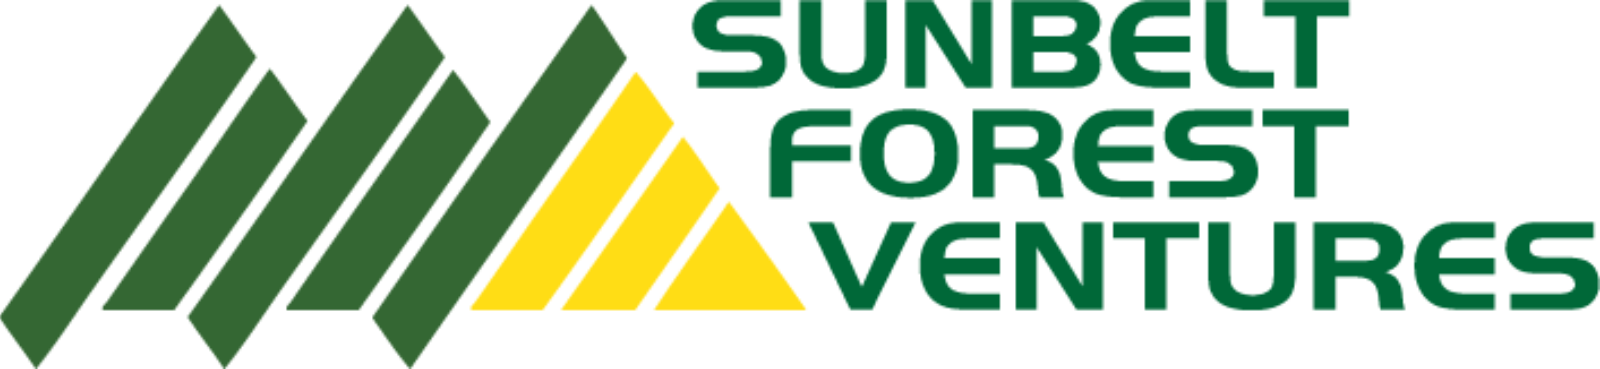 Sunbelt VENTURES logo final